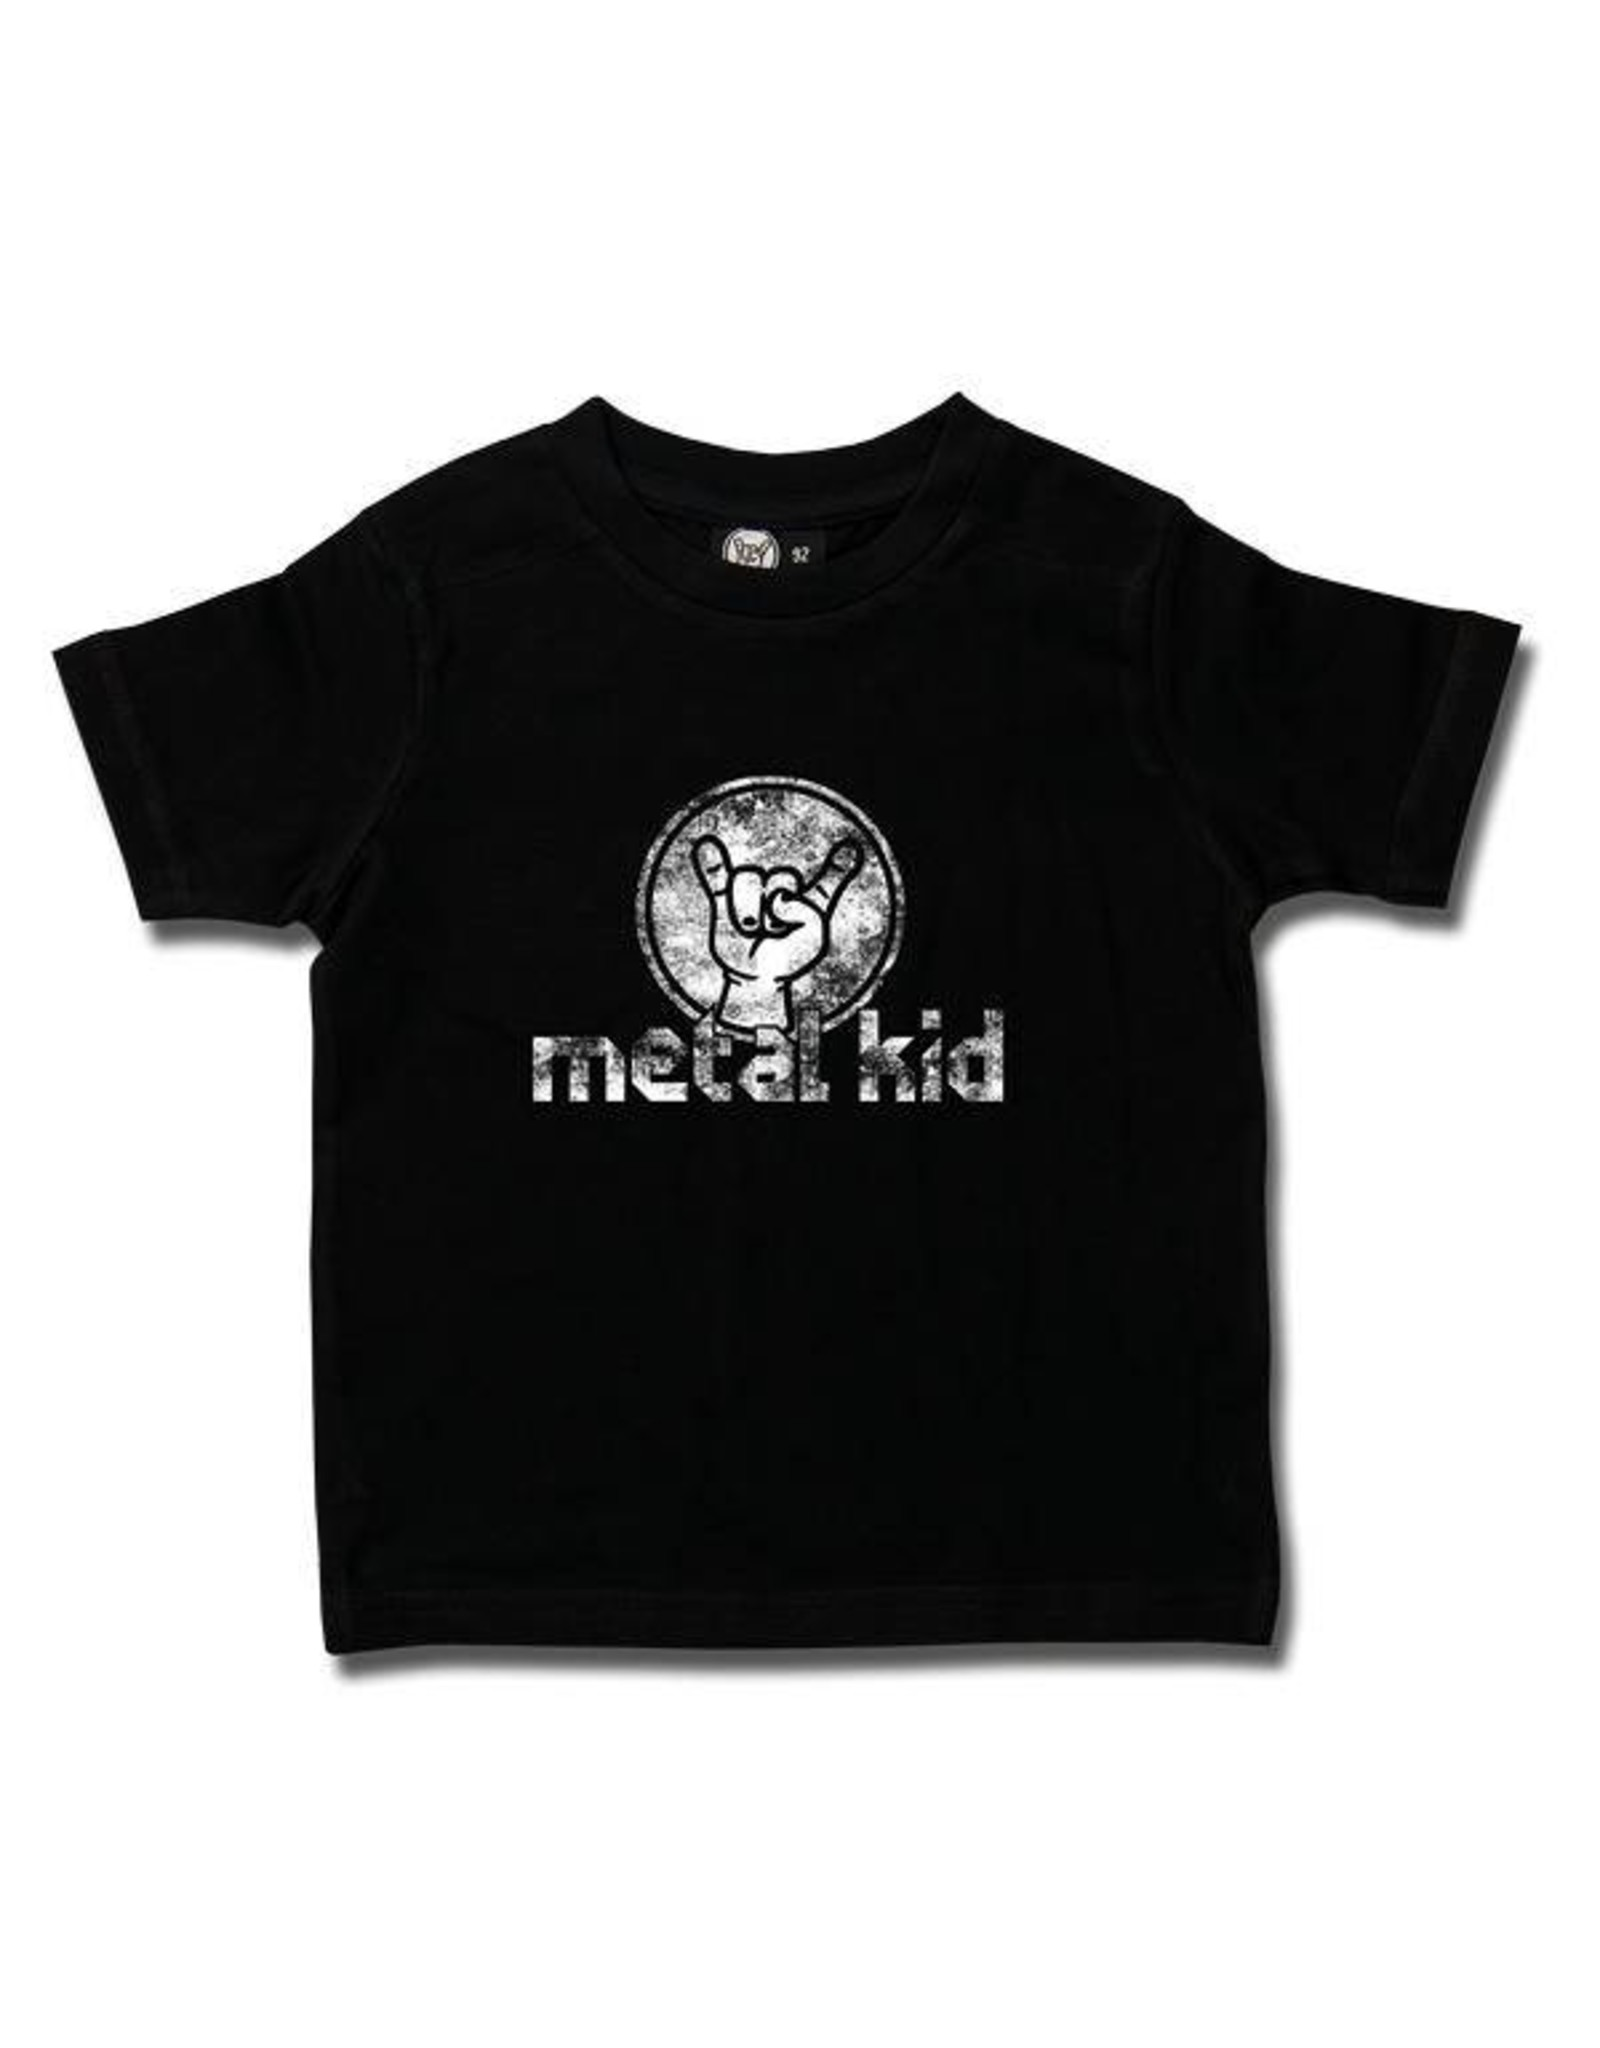 metal kid (Vintage) - Kids T-Shirt